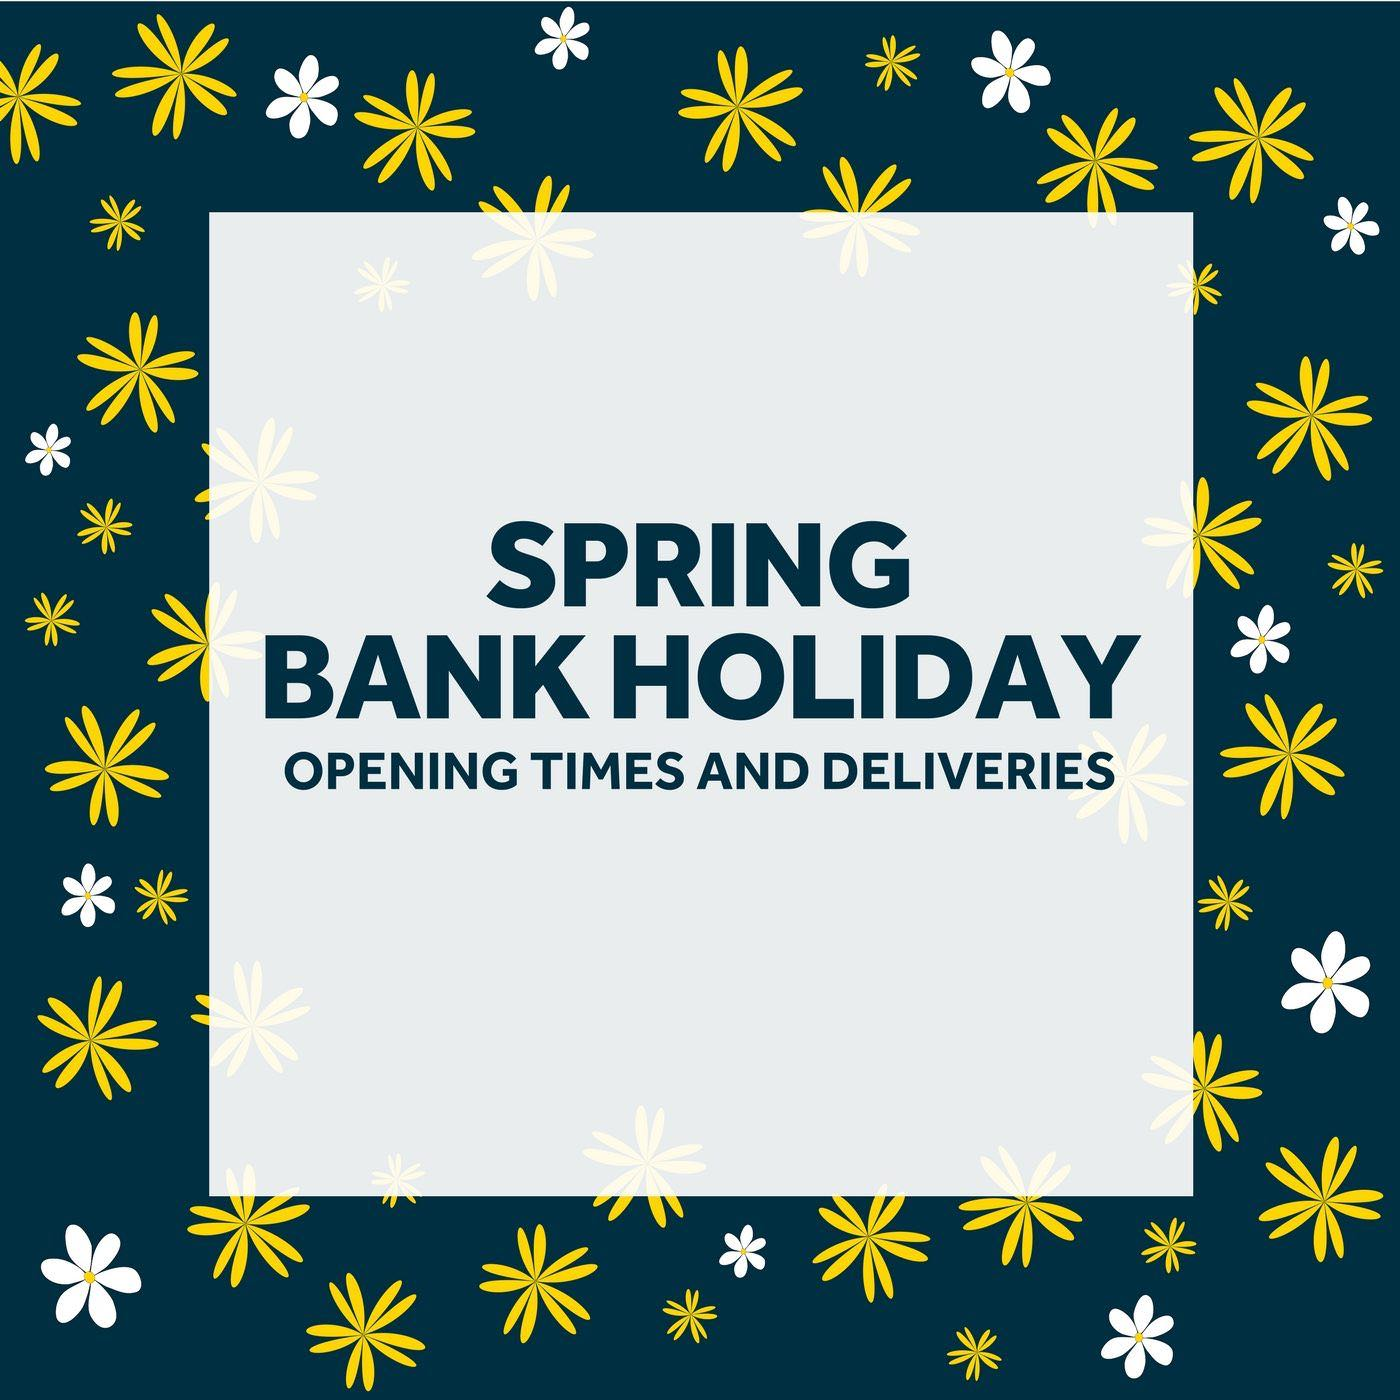 Spring Bank Holiday Opening Times & Deliveries | Endurance ...